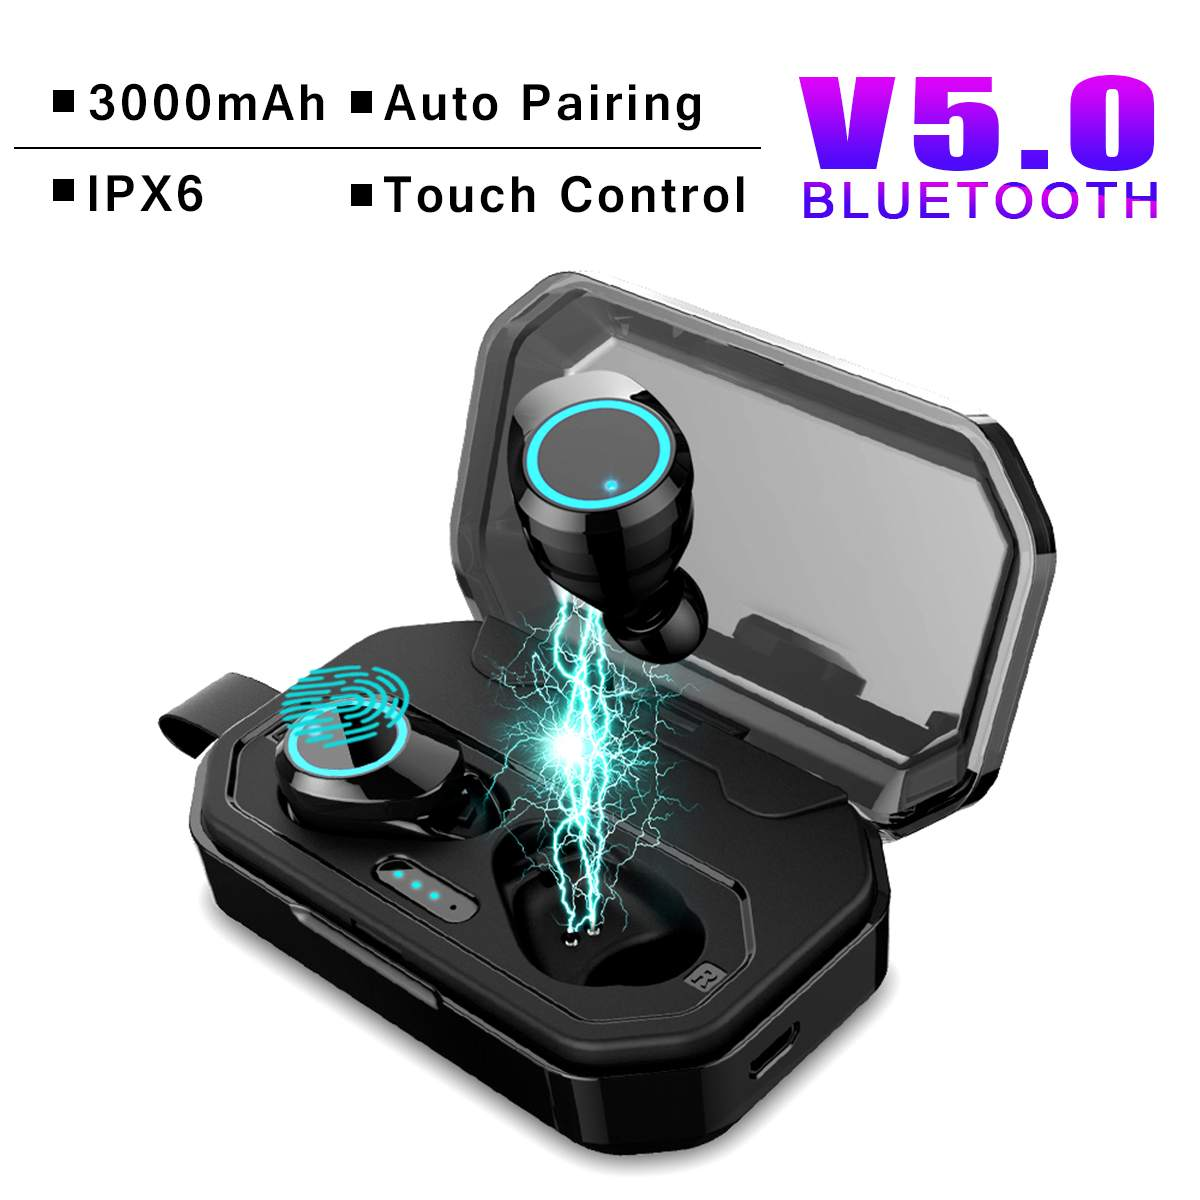 bluetooth V5.0 TWS Wireless Earphone Touchs Control CVC8.0 Noise Cancellings Earbuds 3000mAh Charging Box Power Bank for iphonebluetooth V5.0 TWS Wireless Earphone Touchs Control CVC8.0 Noise Cancellings Earbuds 3000mAh Charging Box Power Bank for iphone